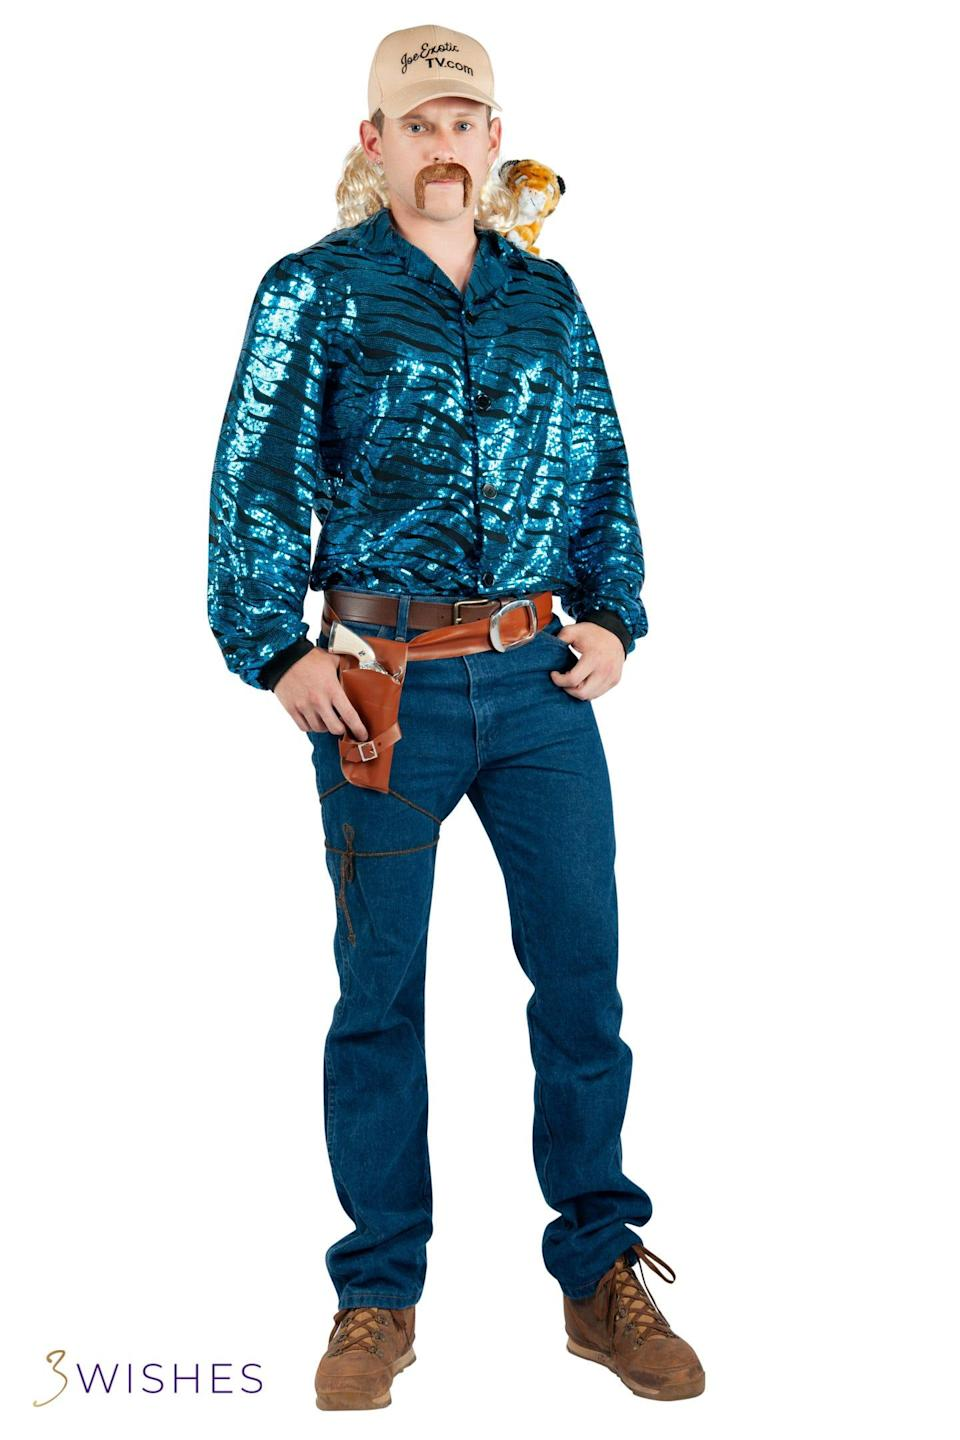 """The """"Joe Exotic Costume"""" from 3Wishes.com."""